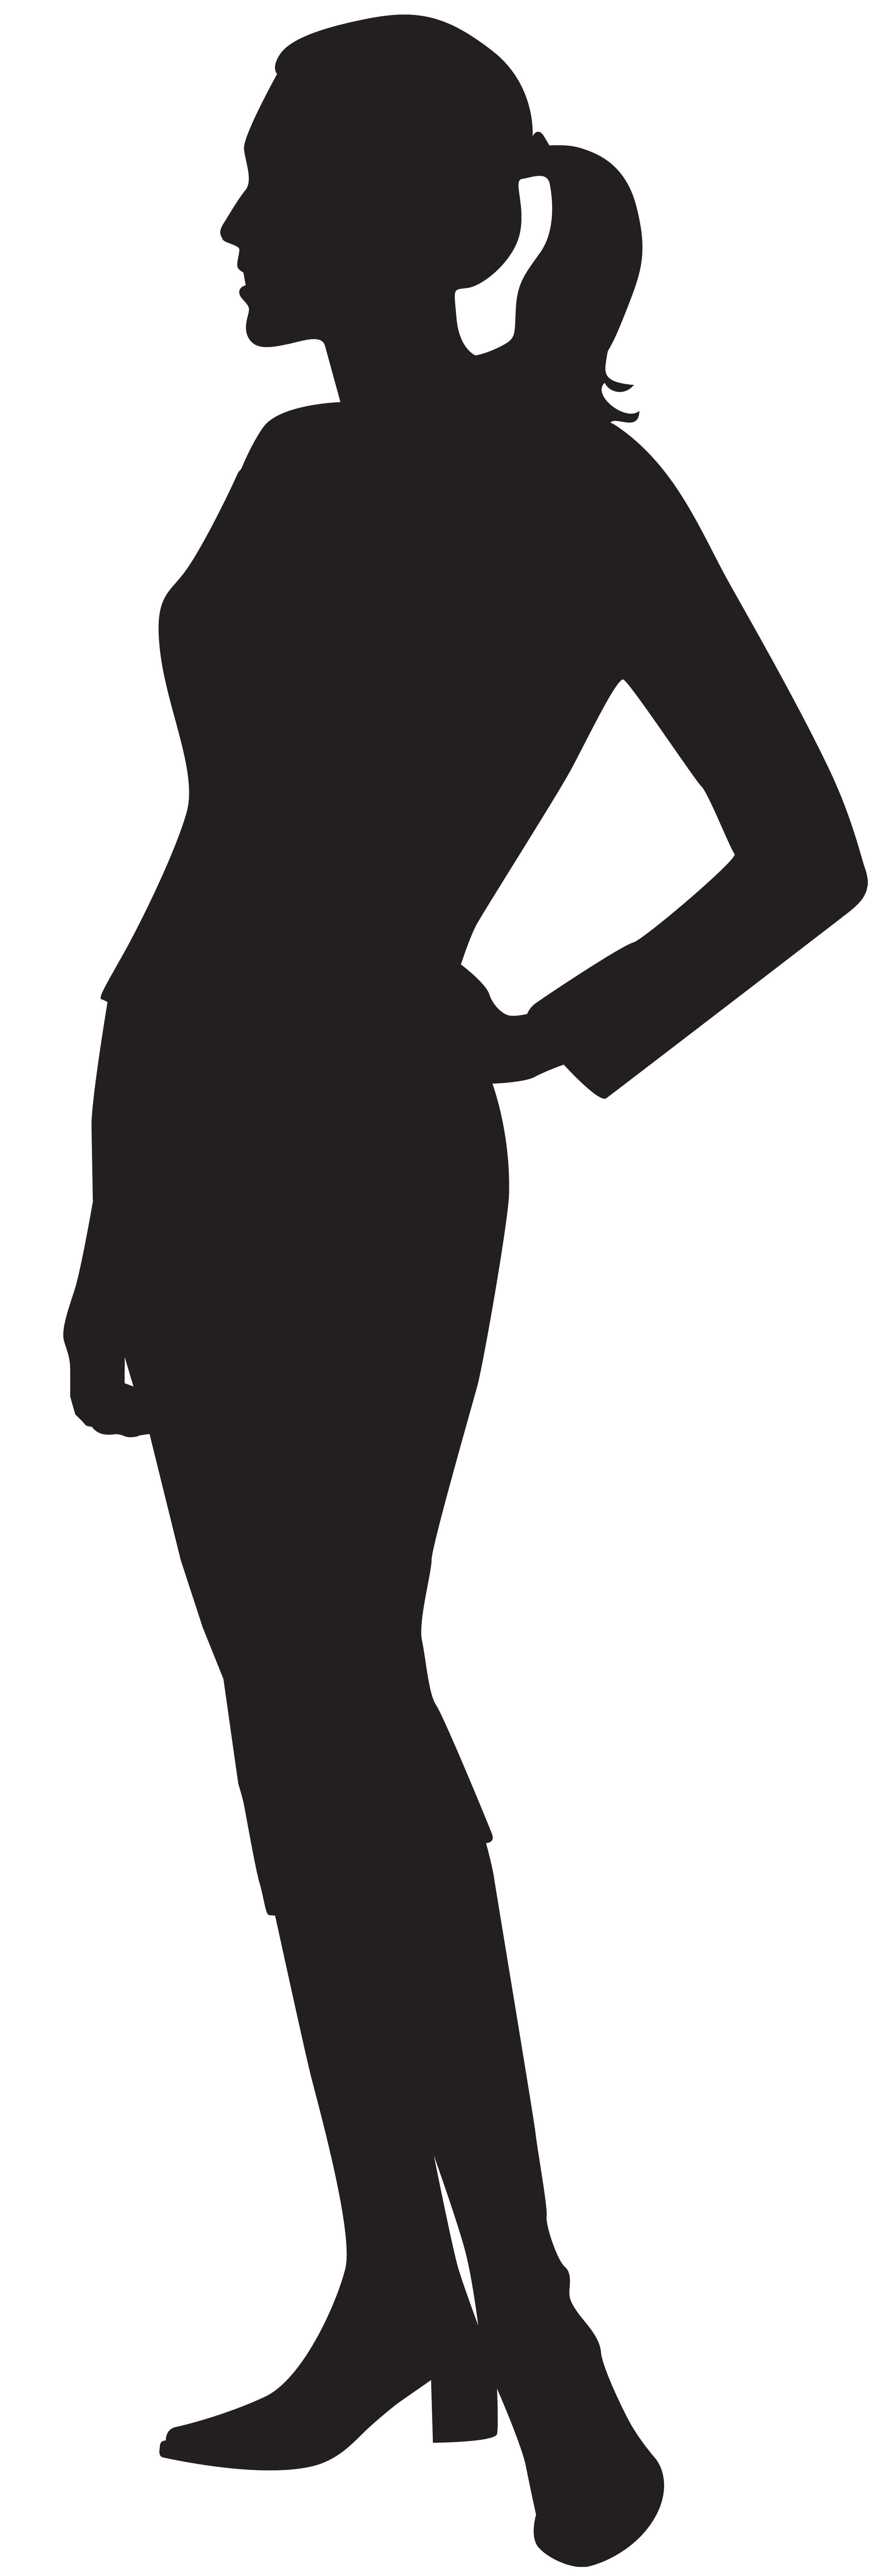 Female silhouette at getdrawings. Exercise clipart african american